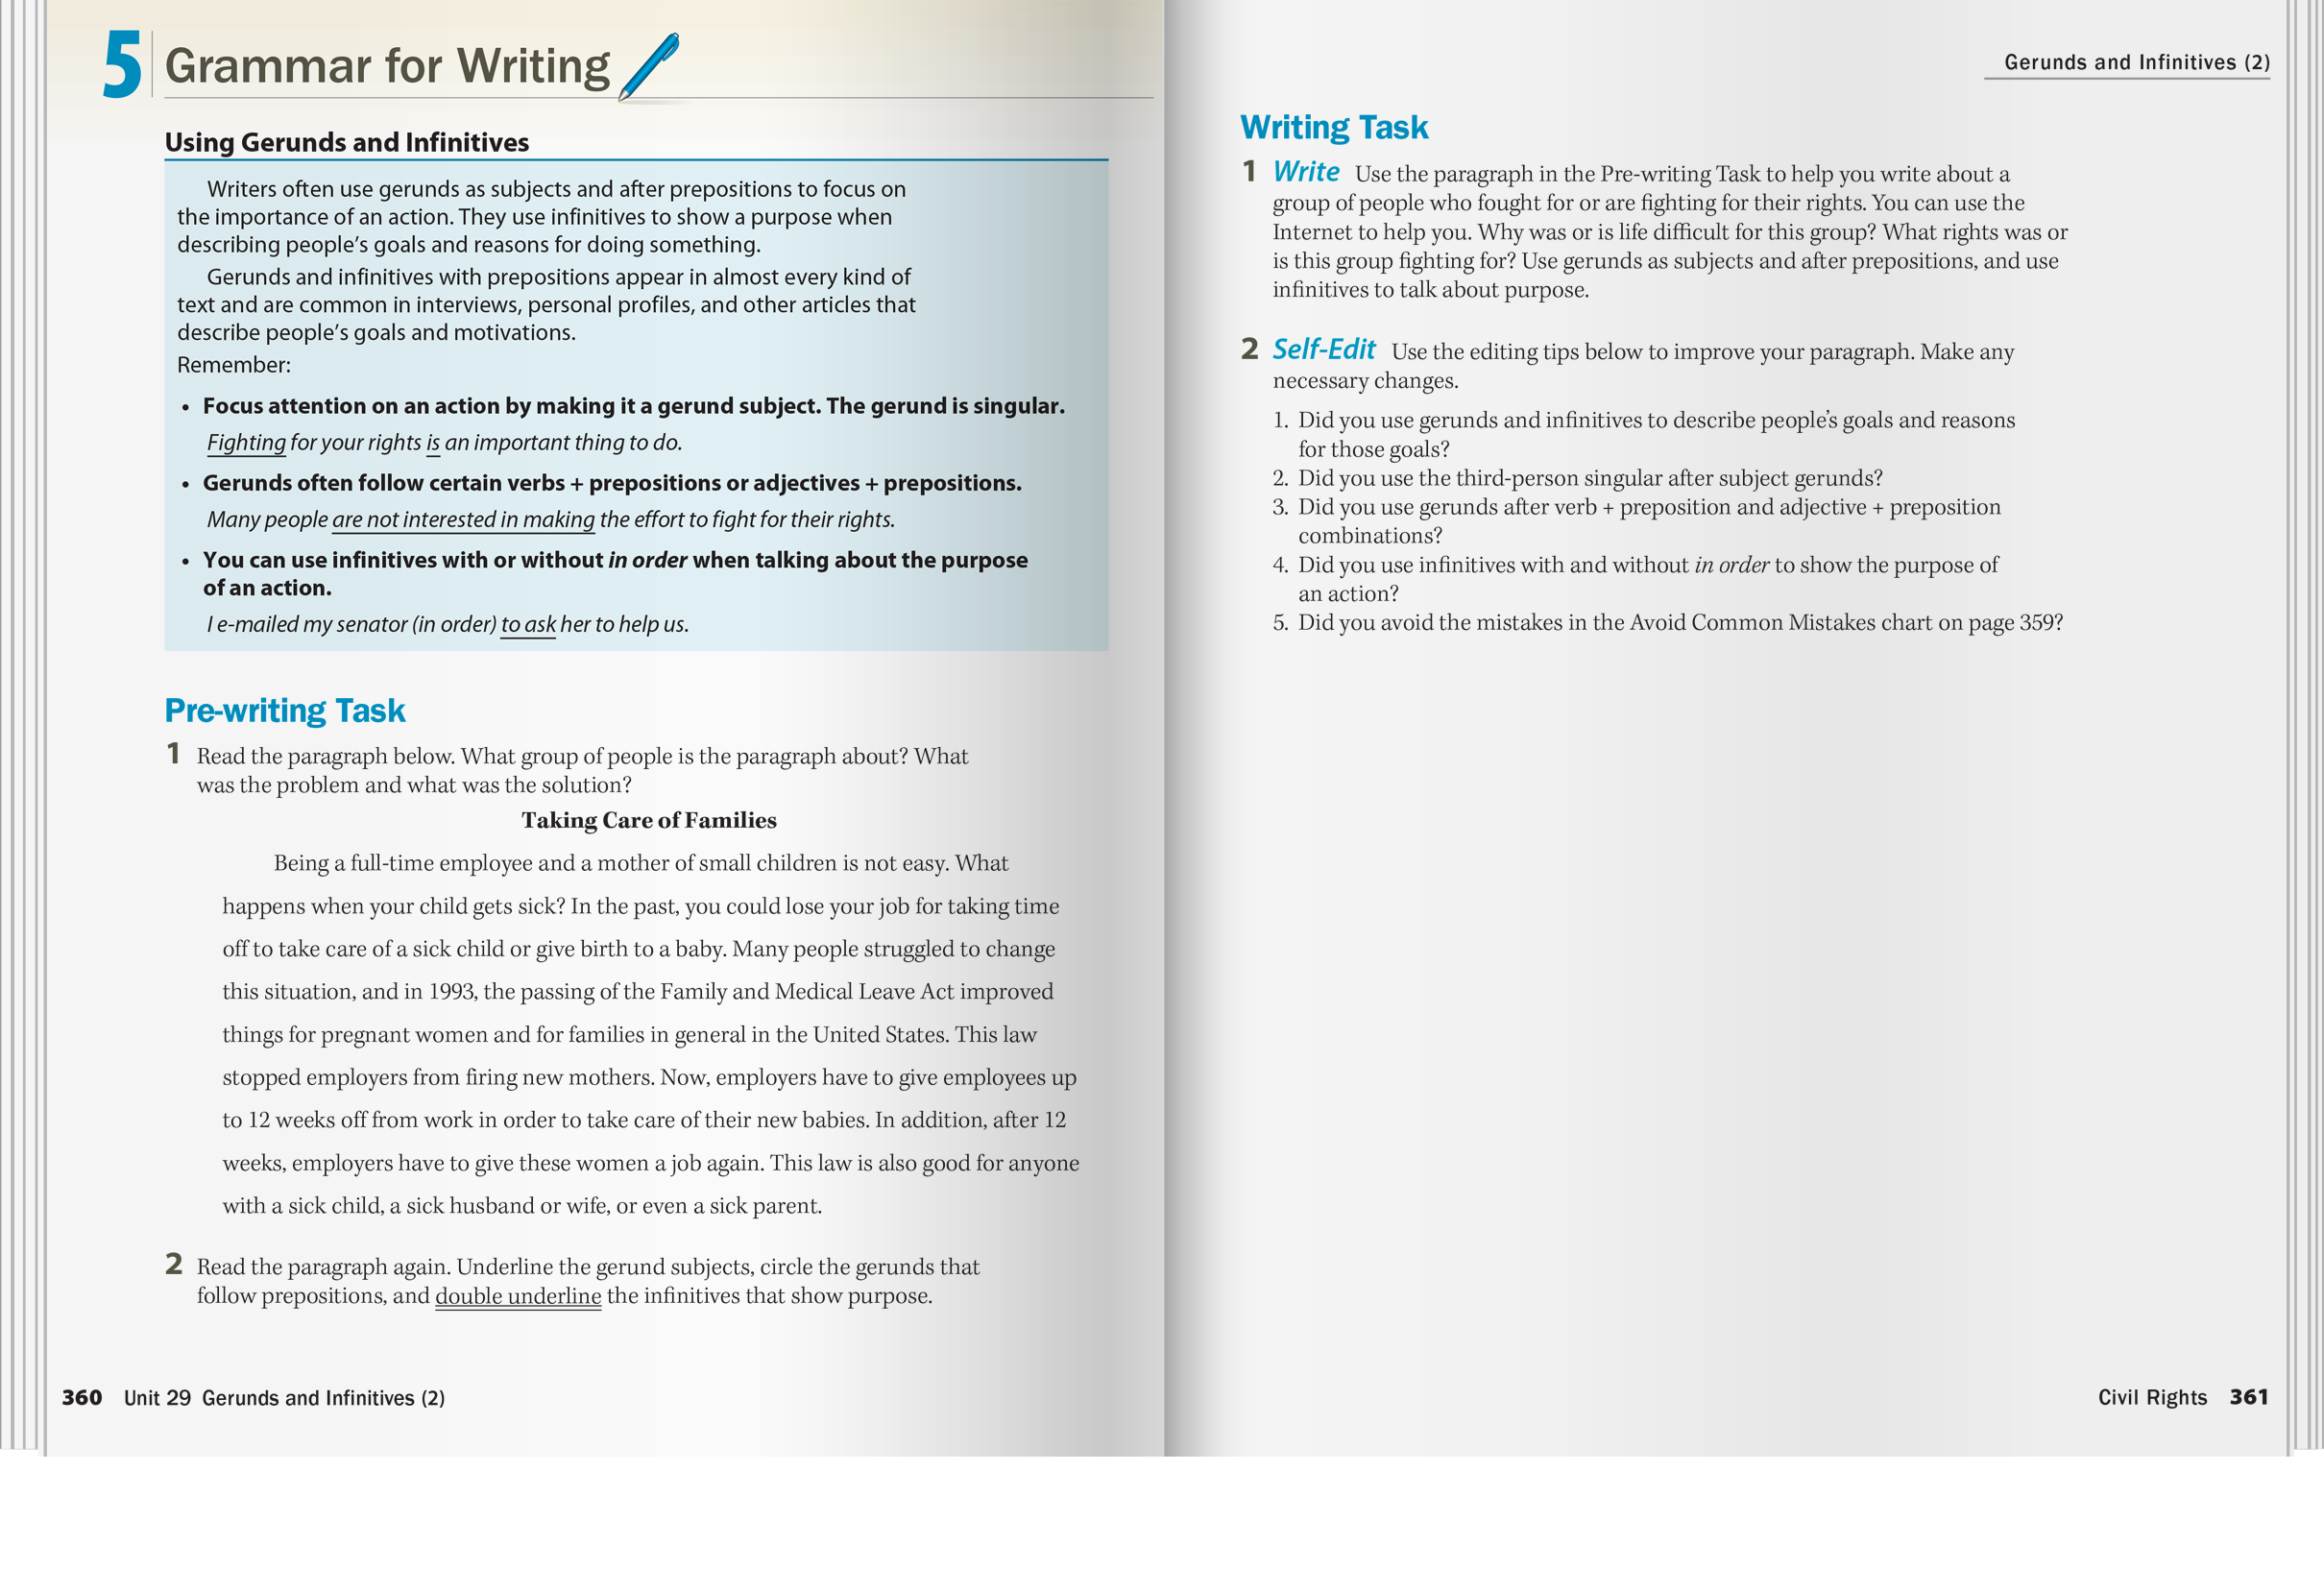 More comprehensive approach to academic writing